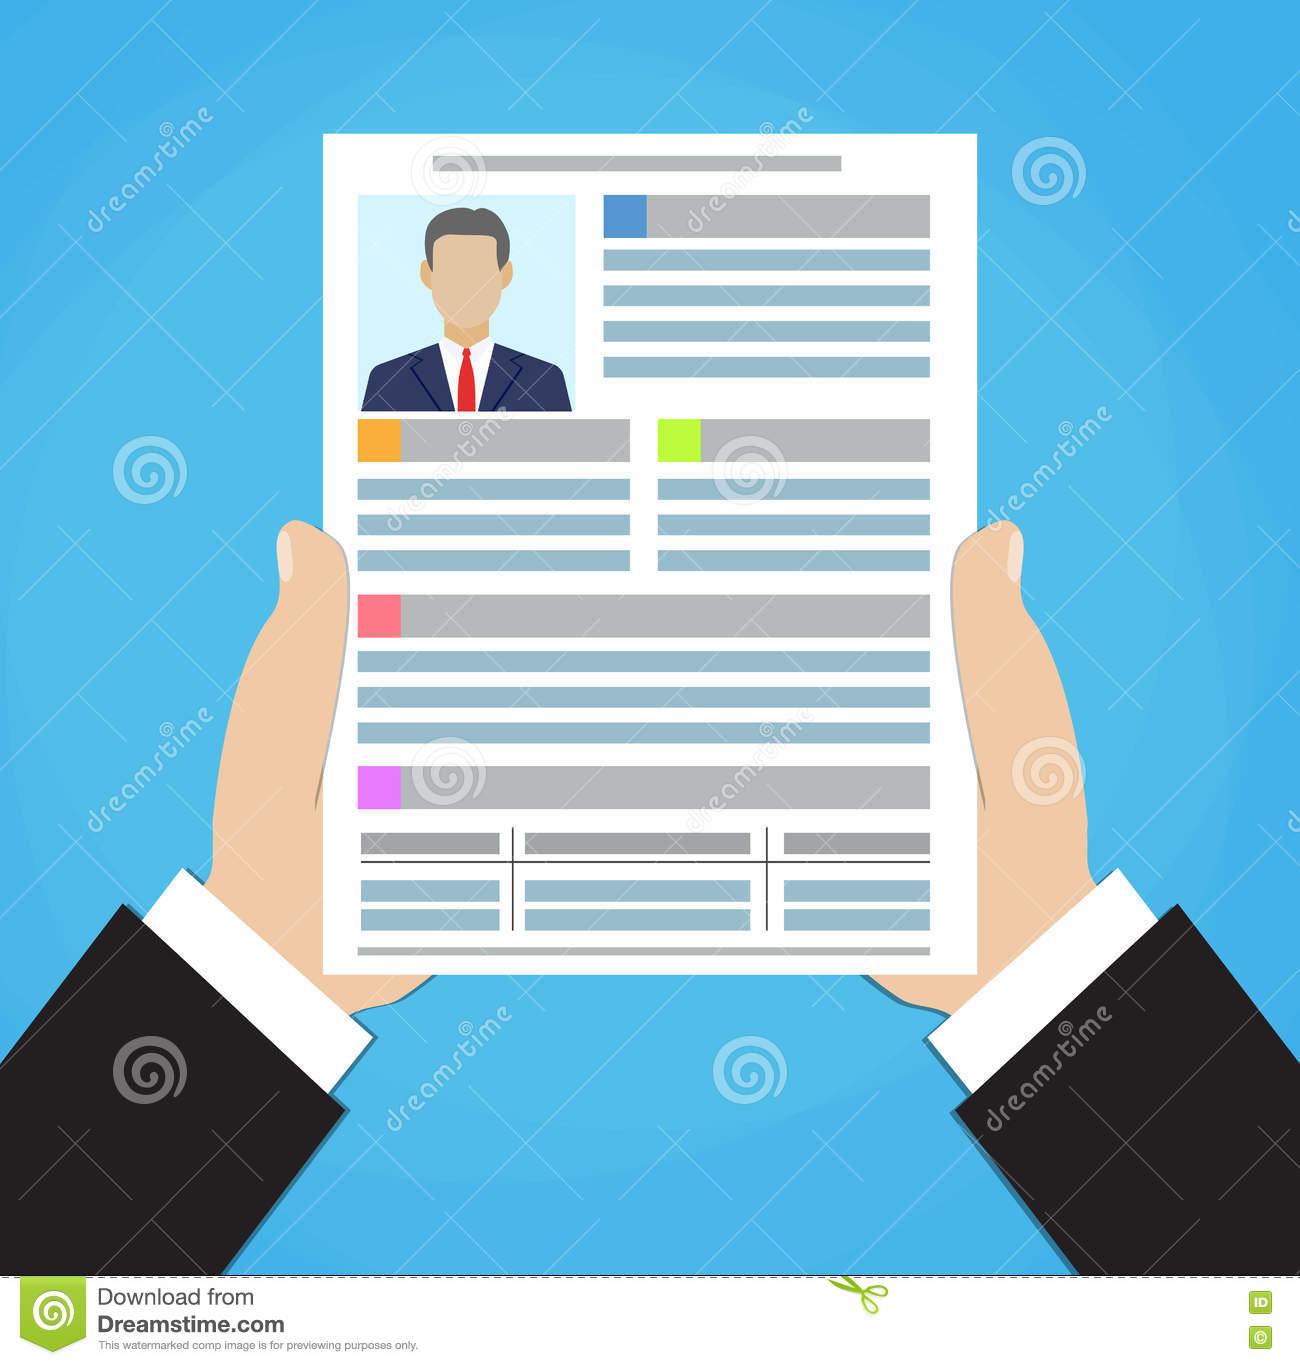 businessman hand holding resume document   stock image